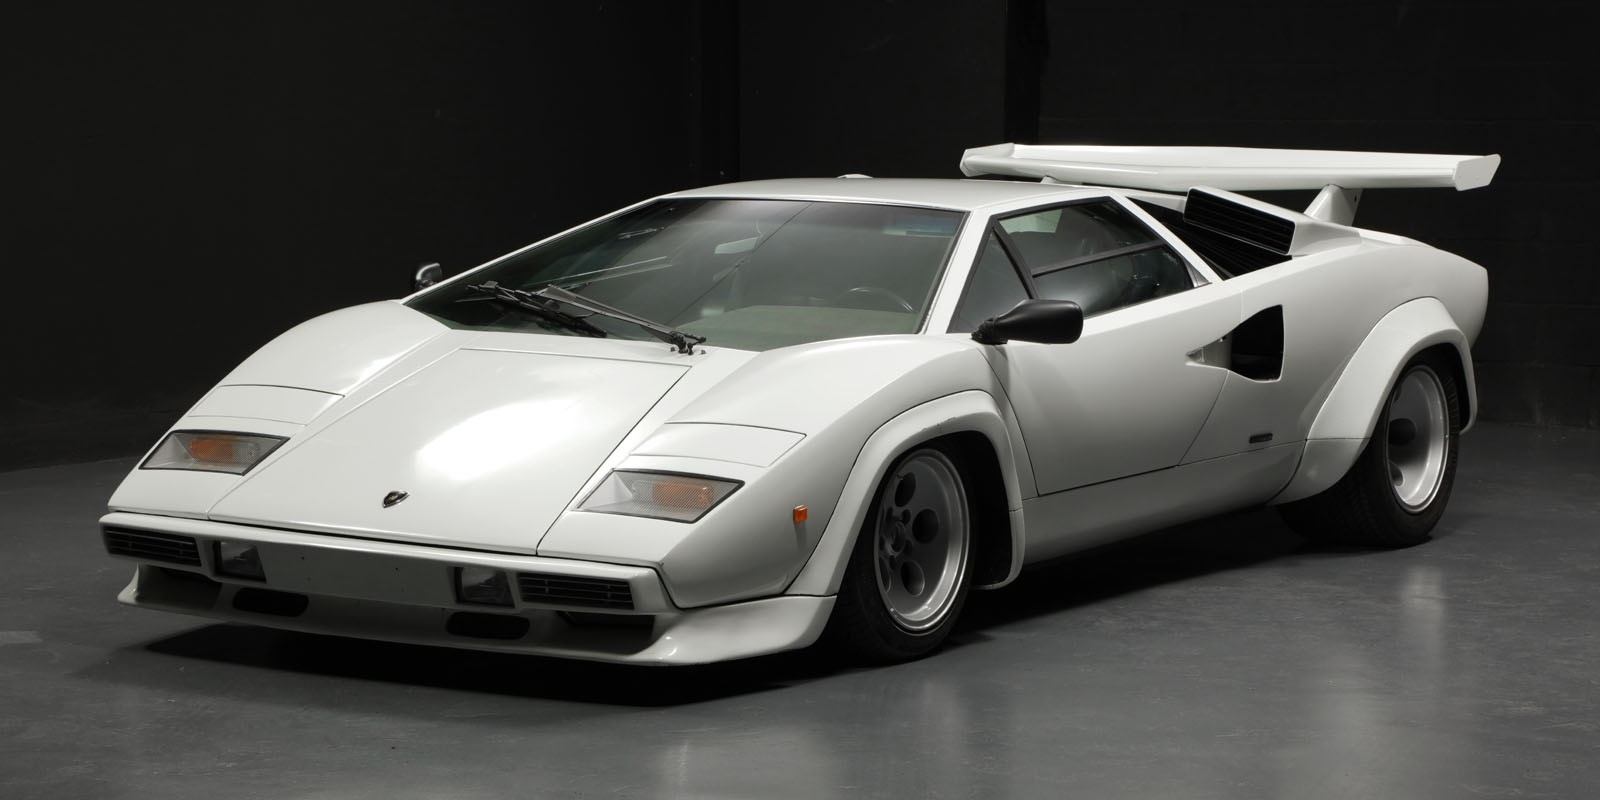 1980 Lamborghini Countach , Vintage car for sale